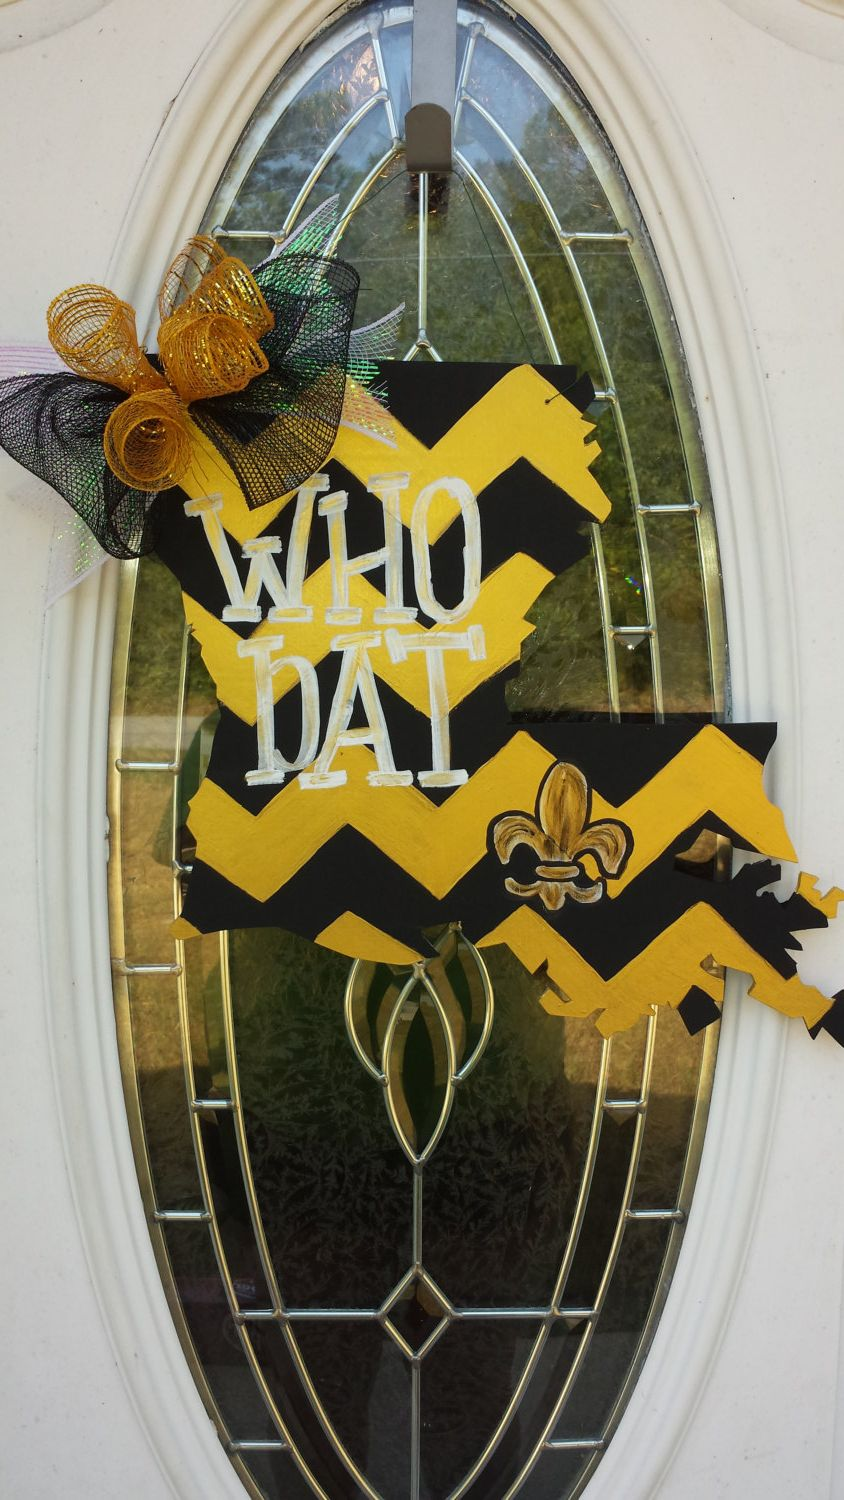 Decorative Door Hangers New Orleans Saints Who Dat Decorative Door Hanger By Occasionsshop